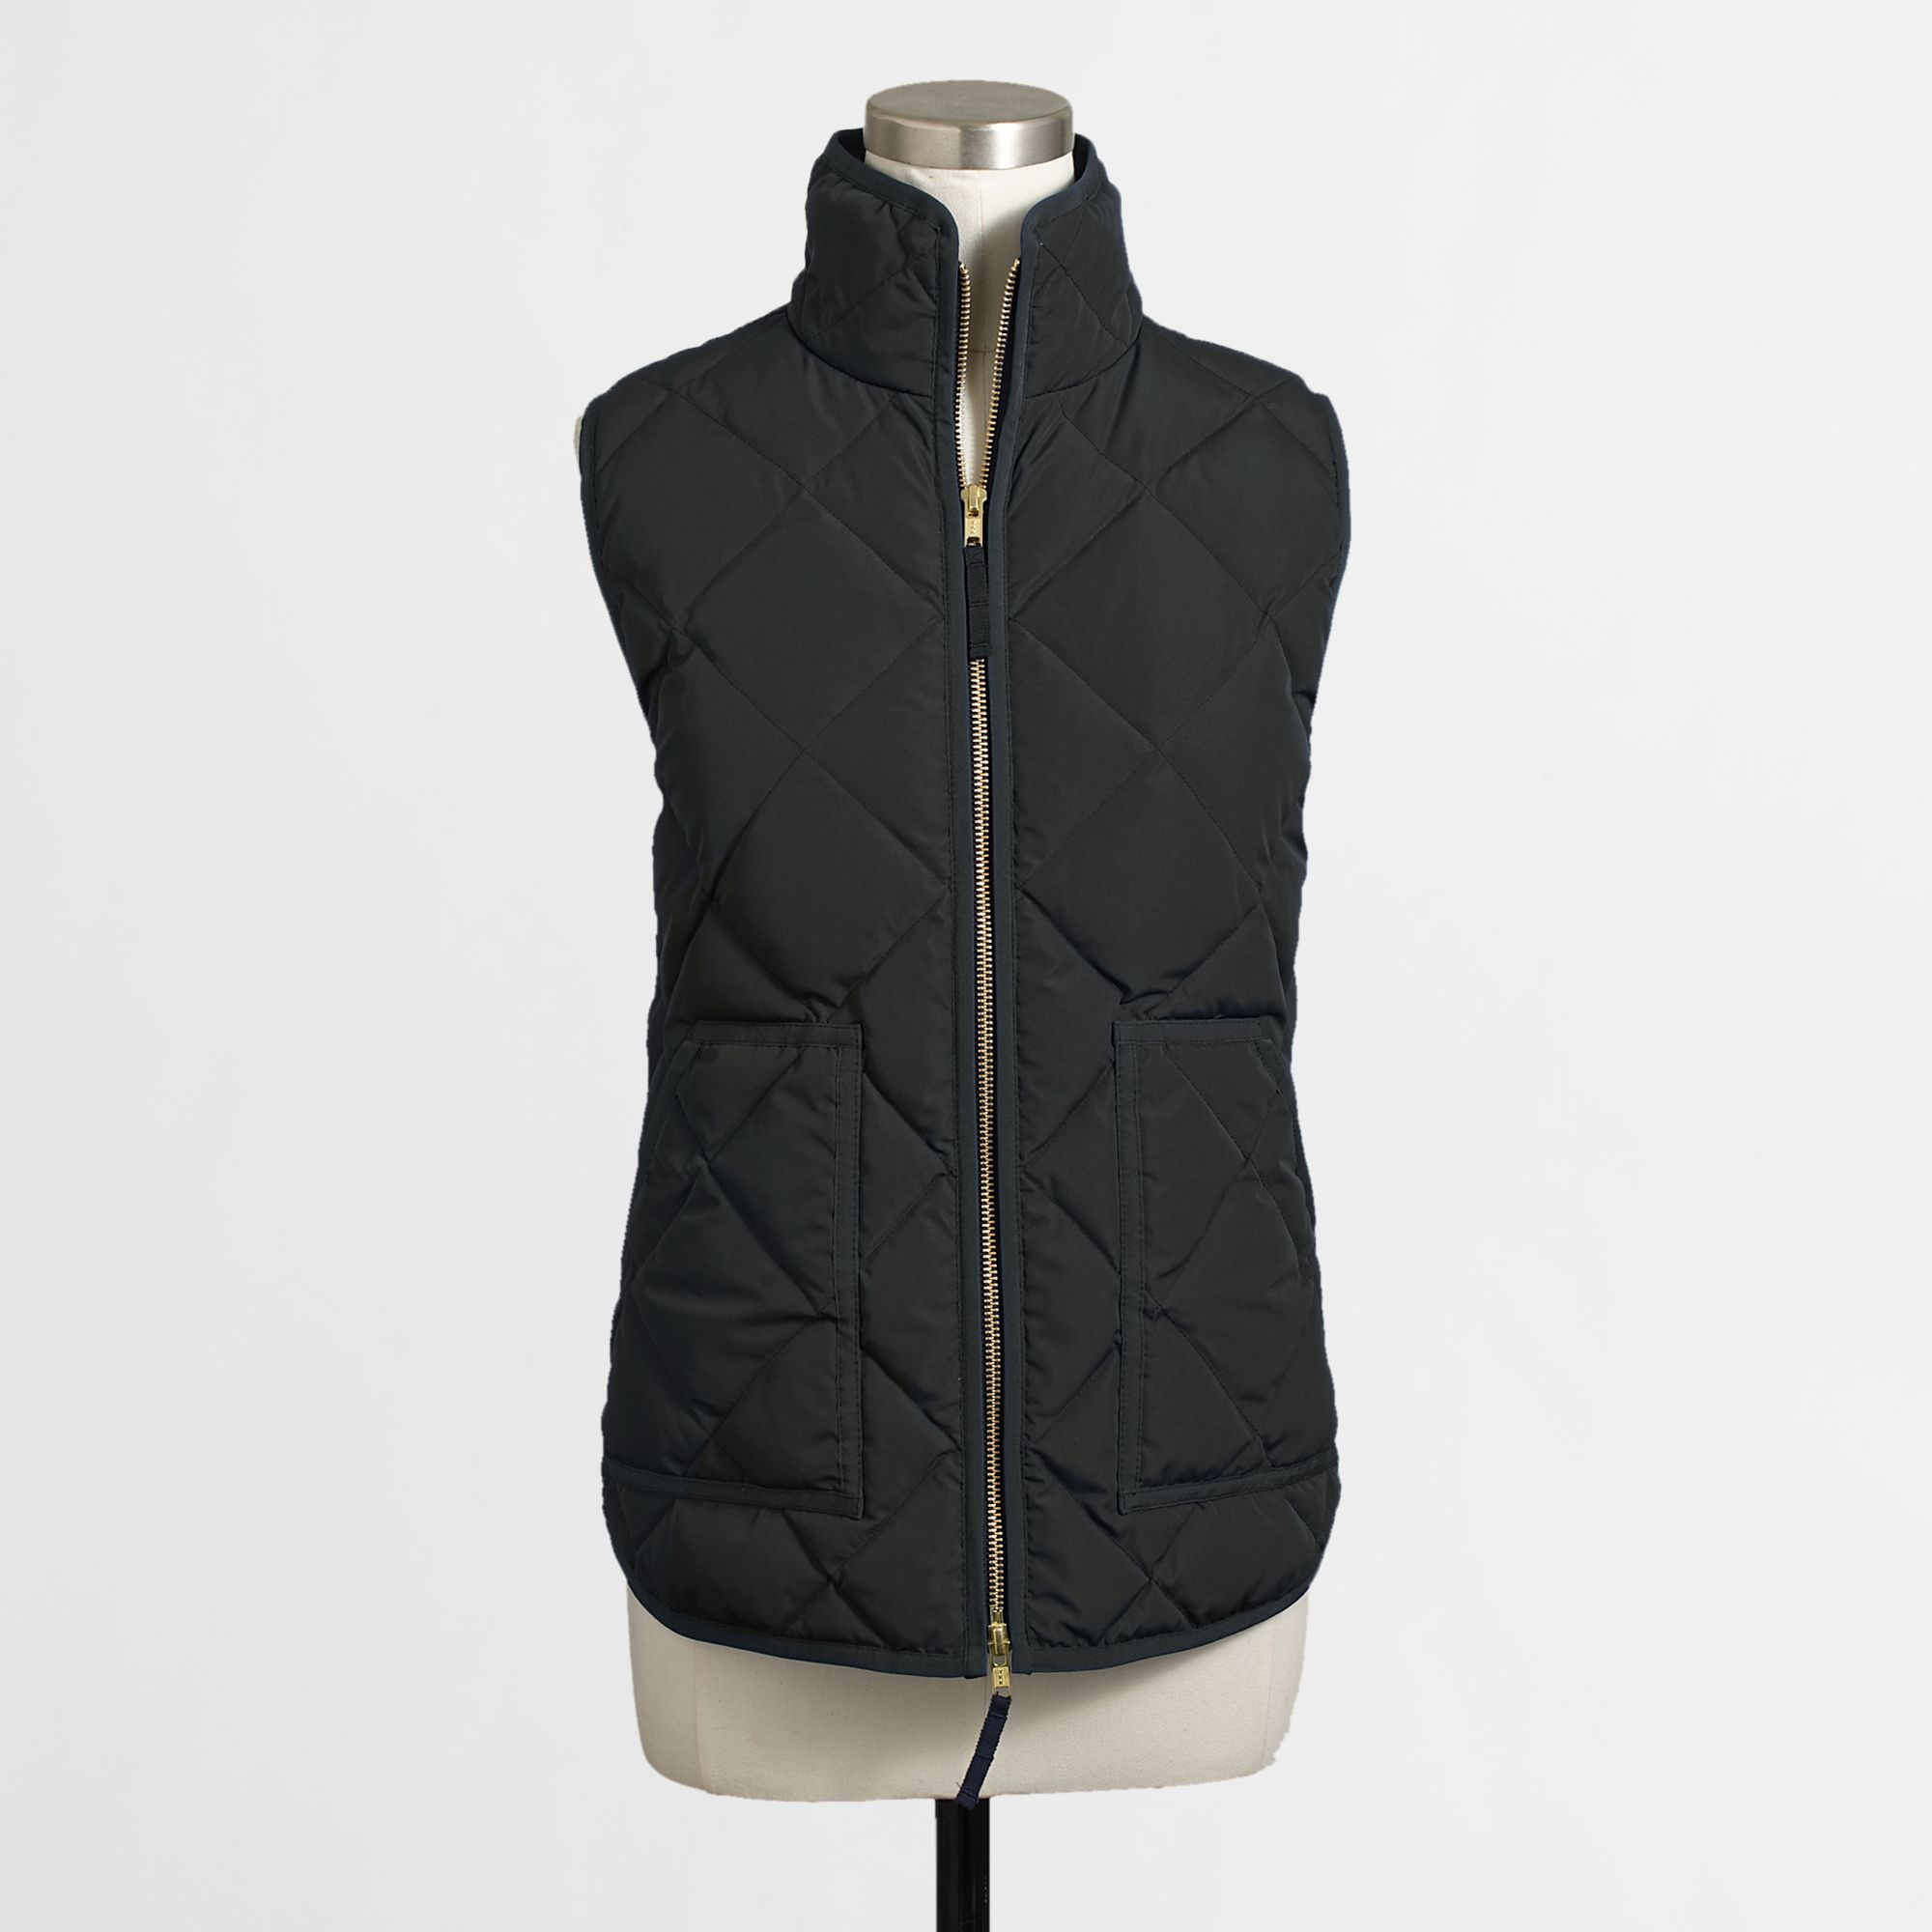 Find great deals on eBay for black quilted vest. Shop with confidence.